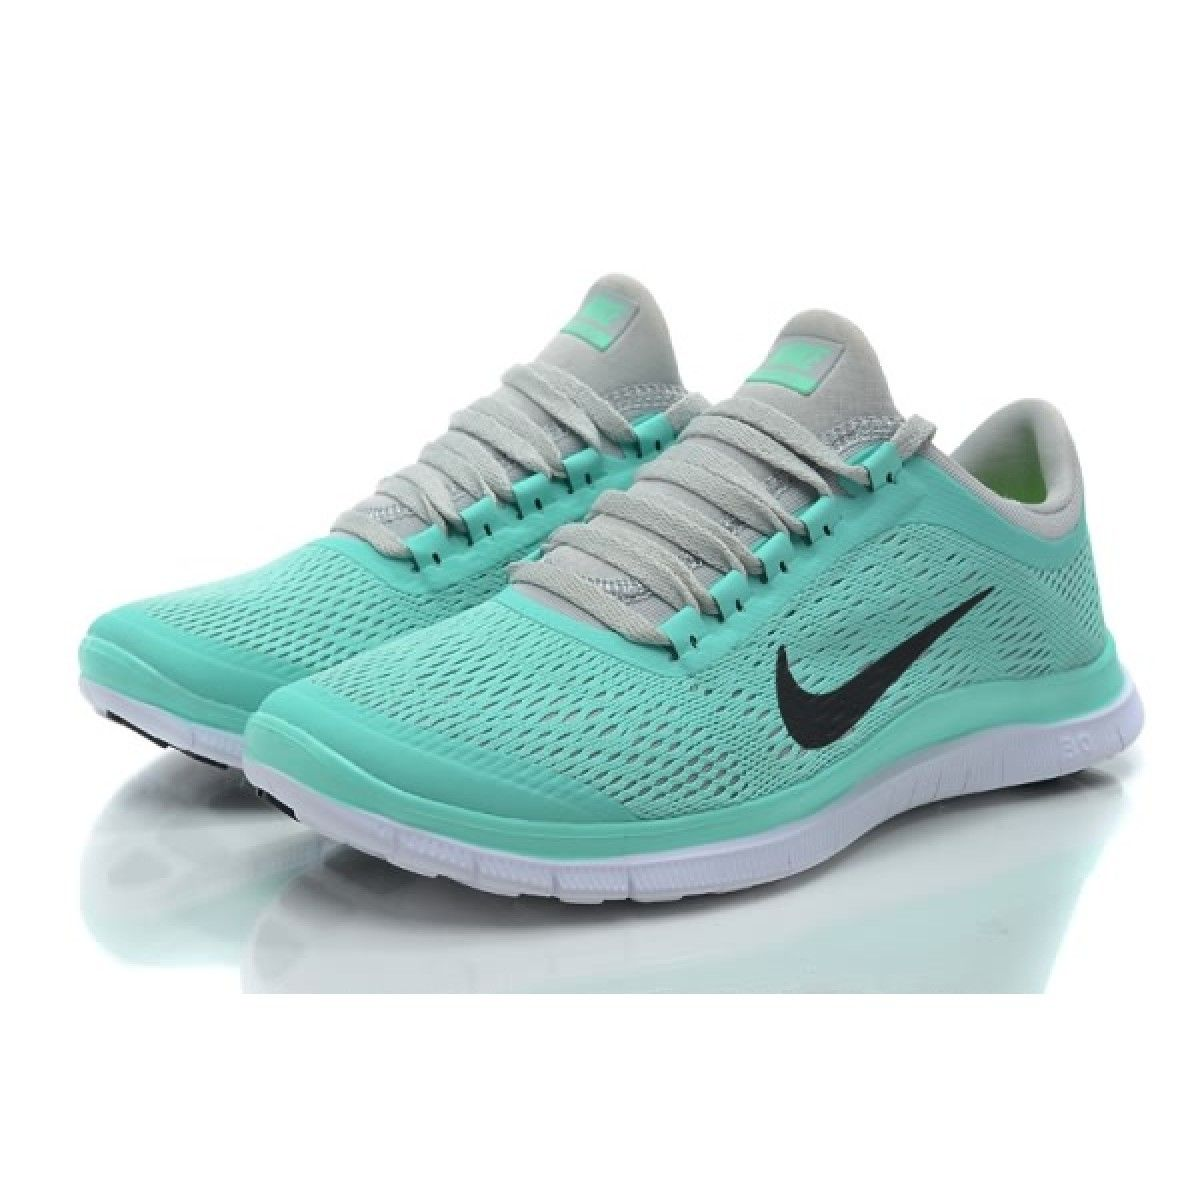 best service 03220 29ced Nike Free 3.0 V5 Womens  Nike Free 3.0 V5 Womens Running shoes Crystal  Mint for sale